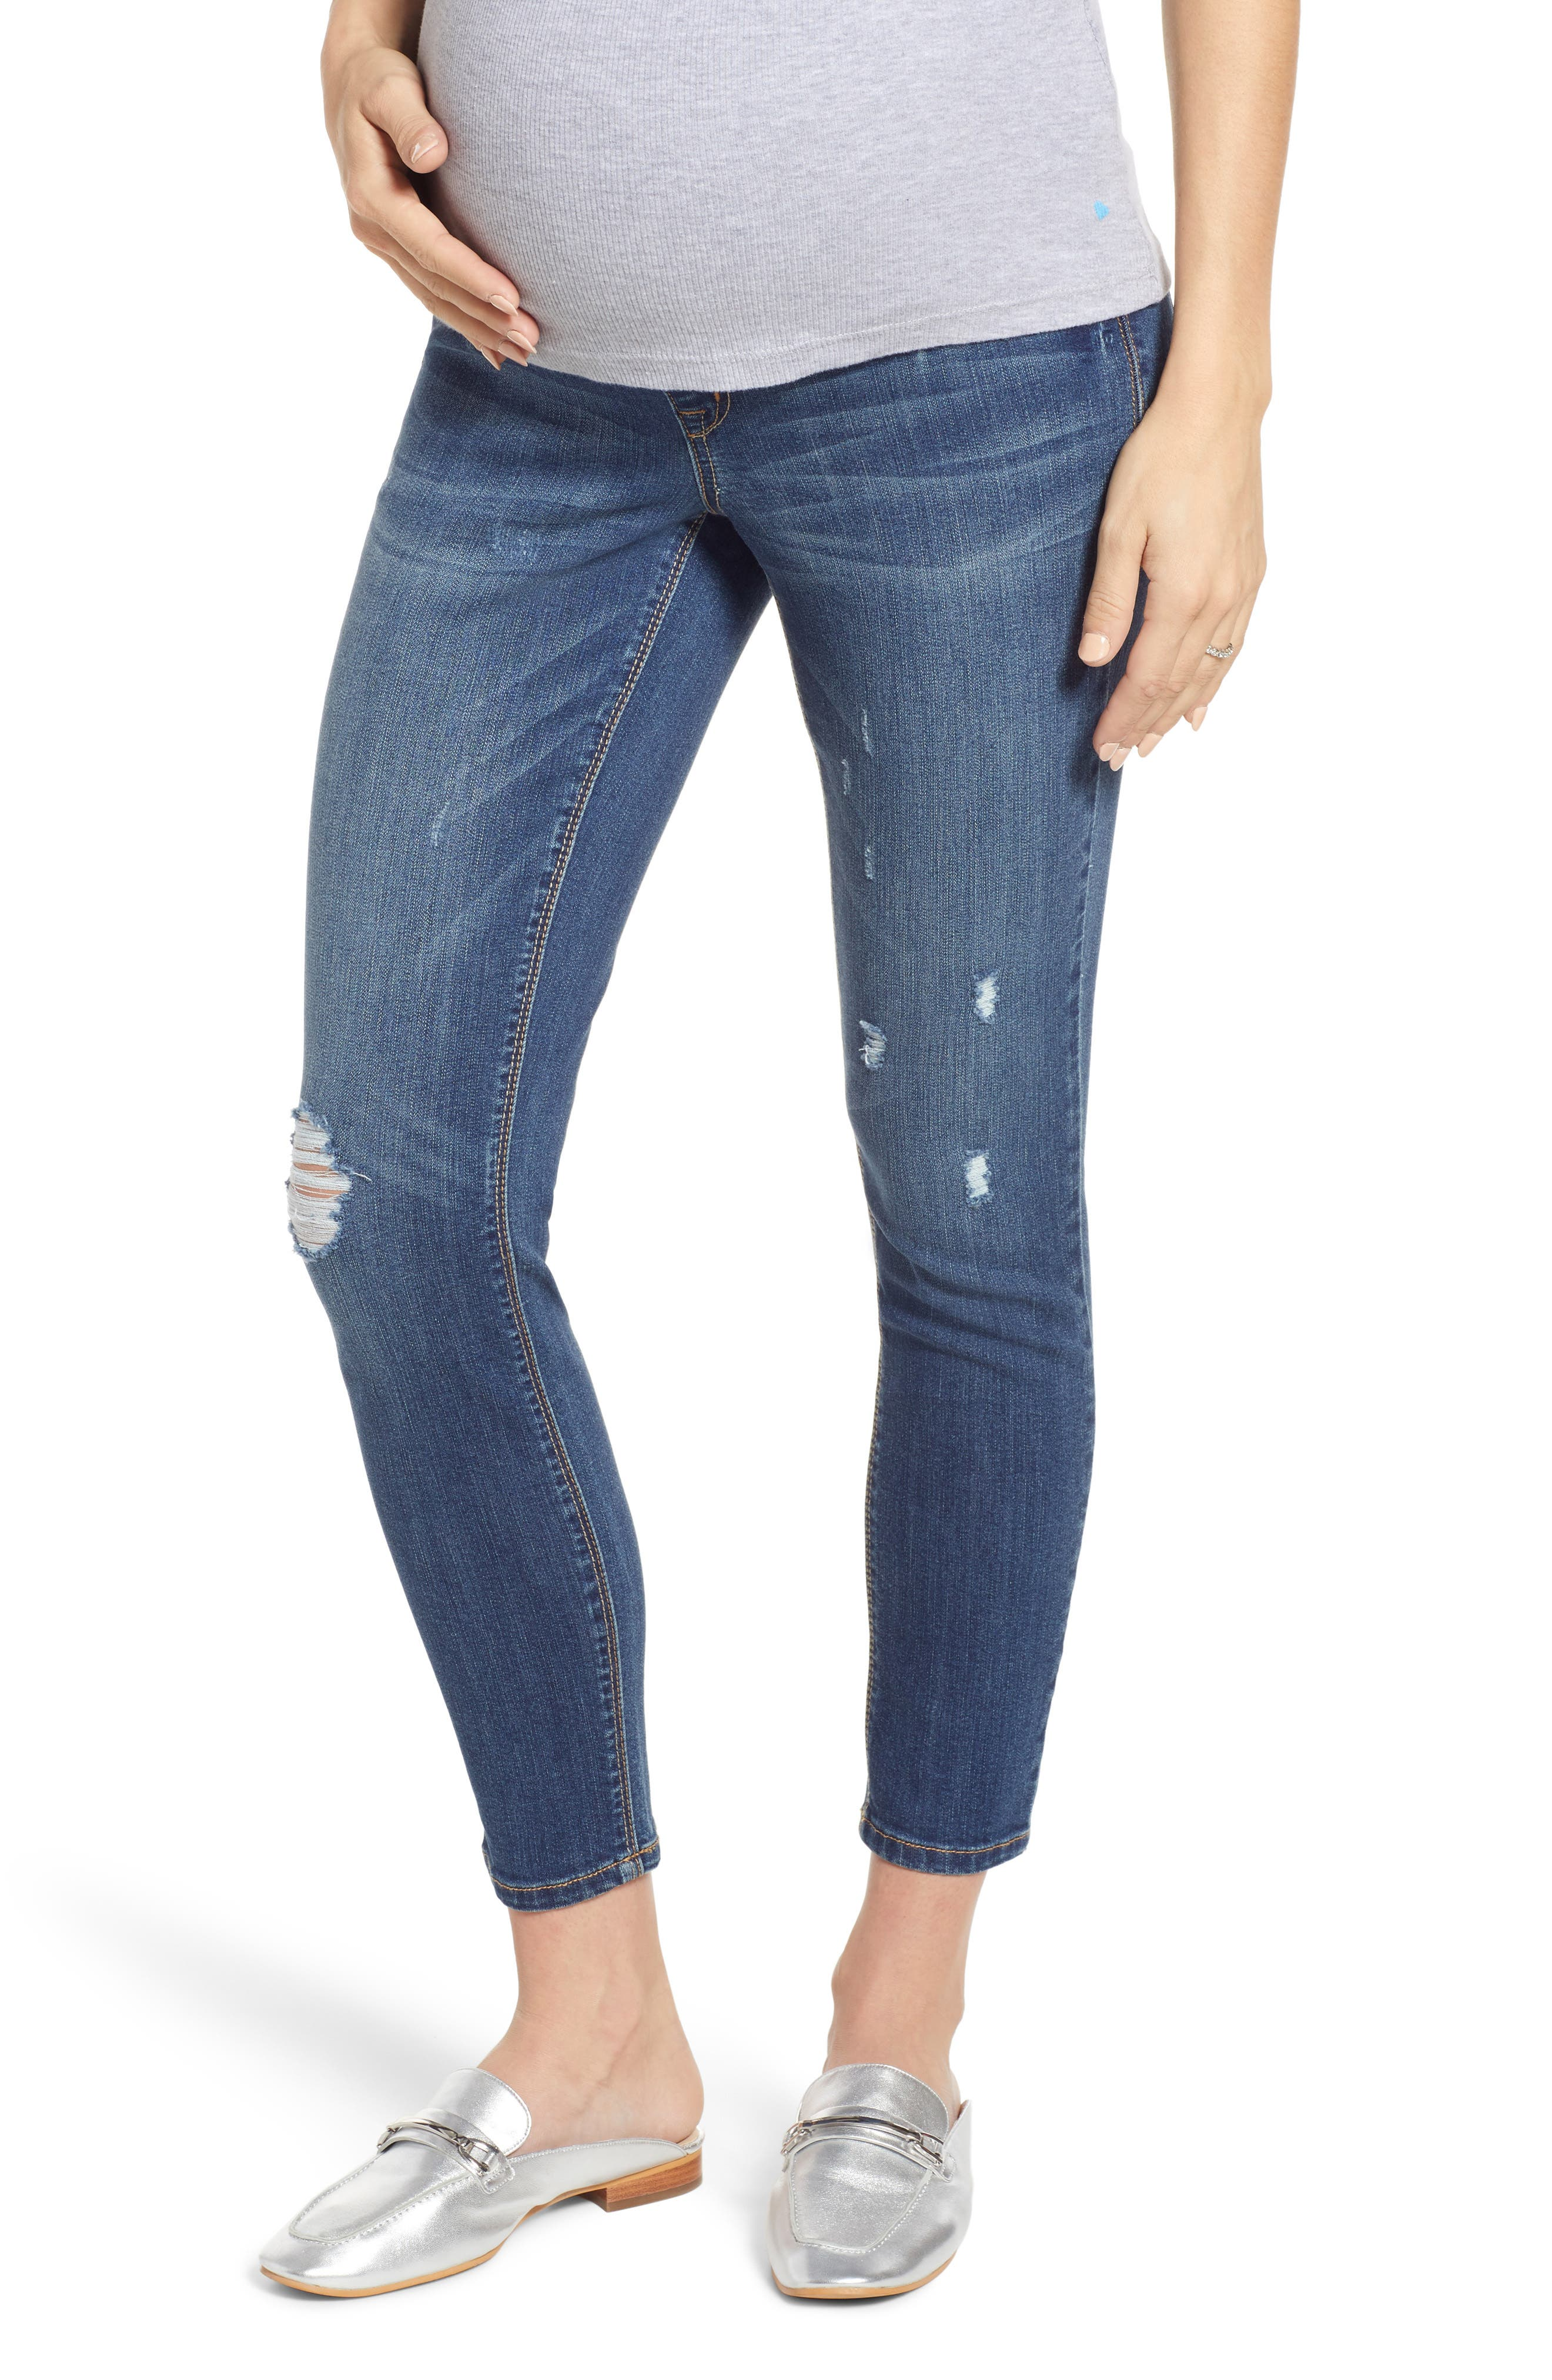 Women's 1822 Denim Distressed Maternity Ankle Skinny Jeans